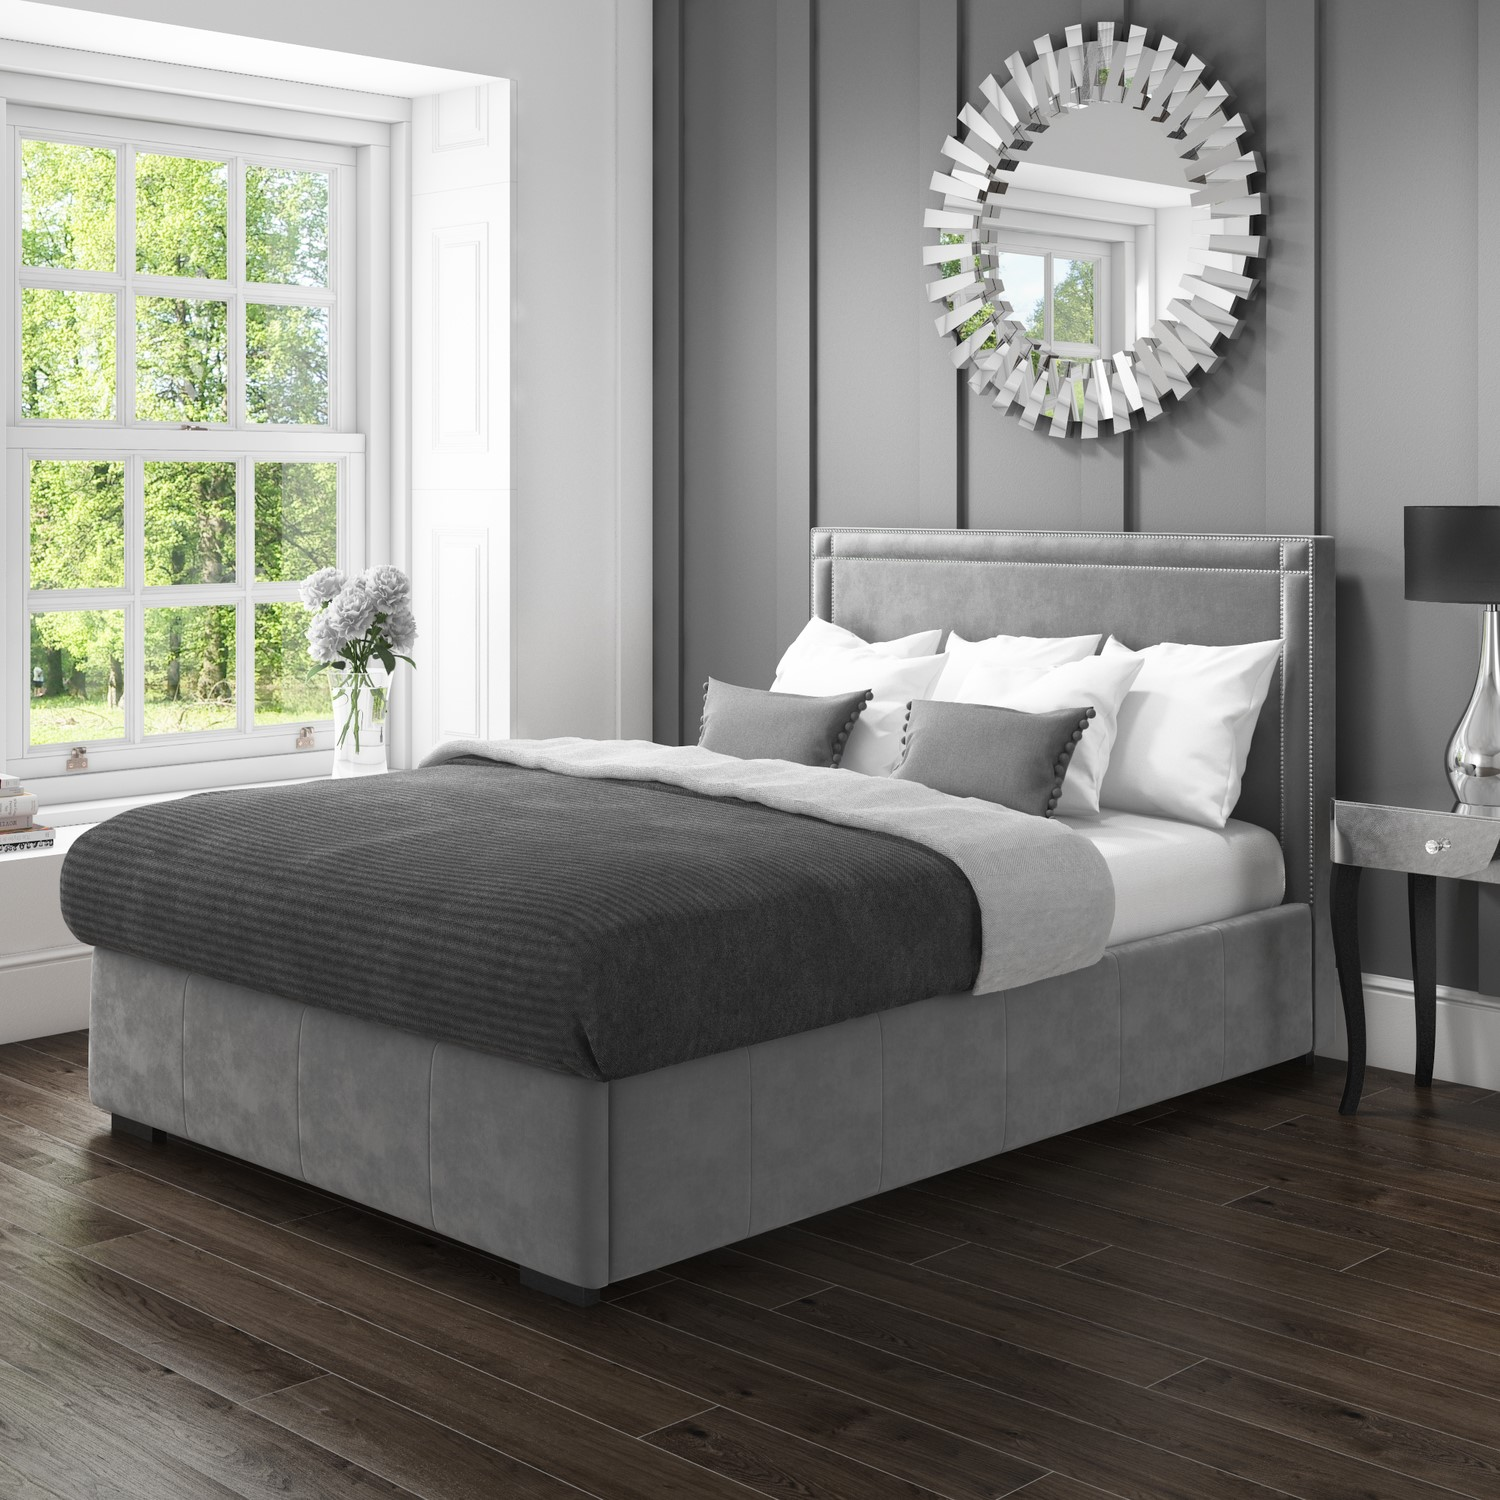 Amazing Safina Double Ottoman Bed With Stud Detailing In Grey Velvet Pdpeps Interior Chair Design Pdpepsorg